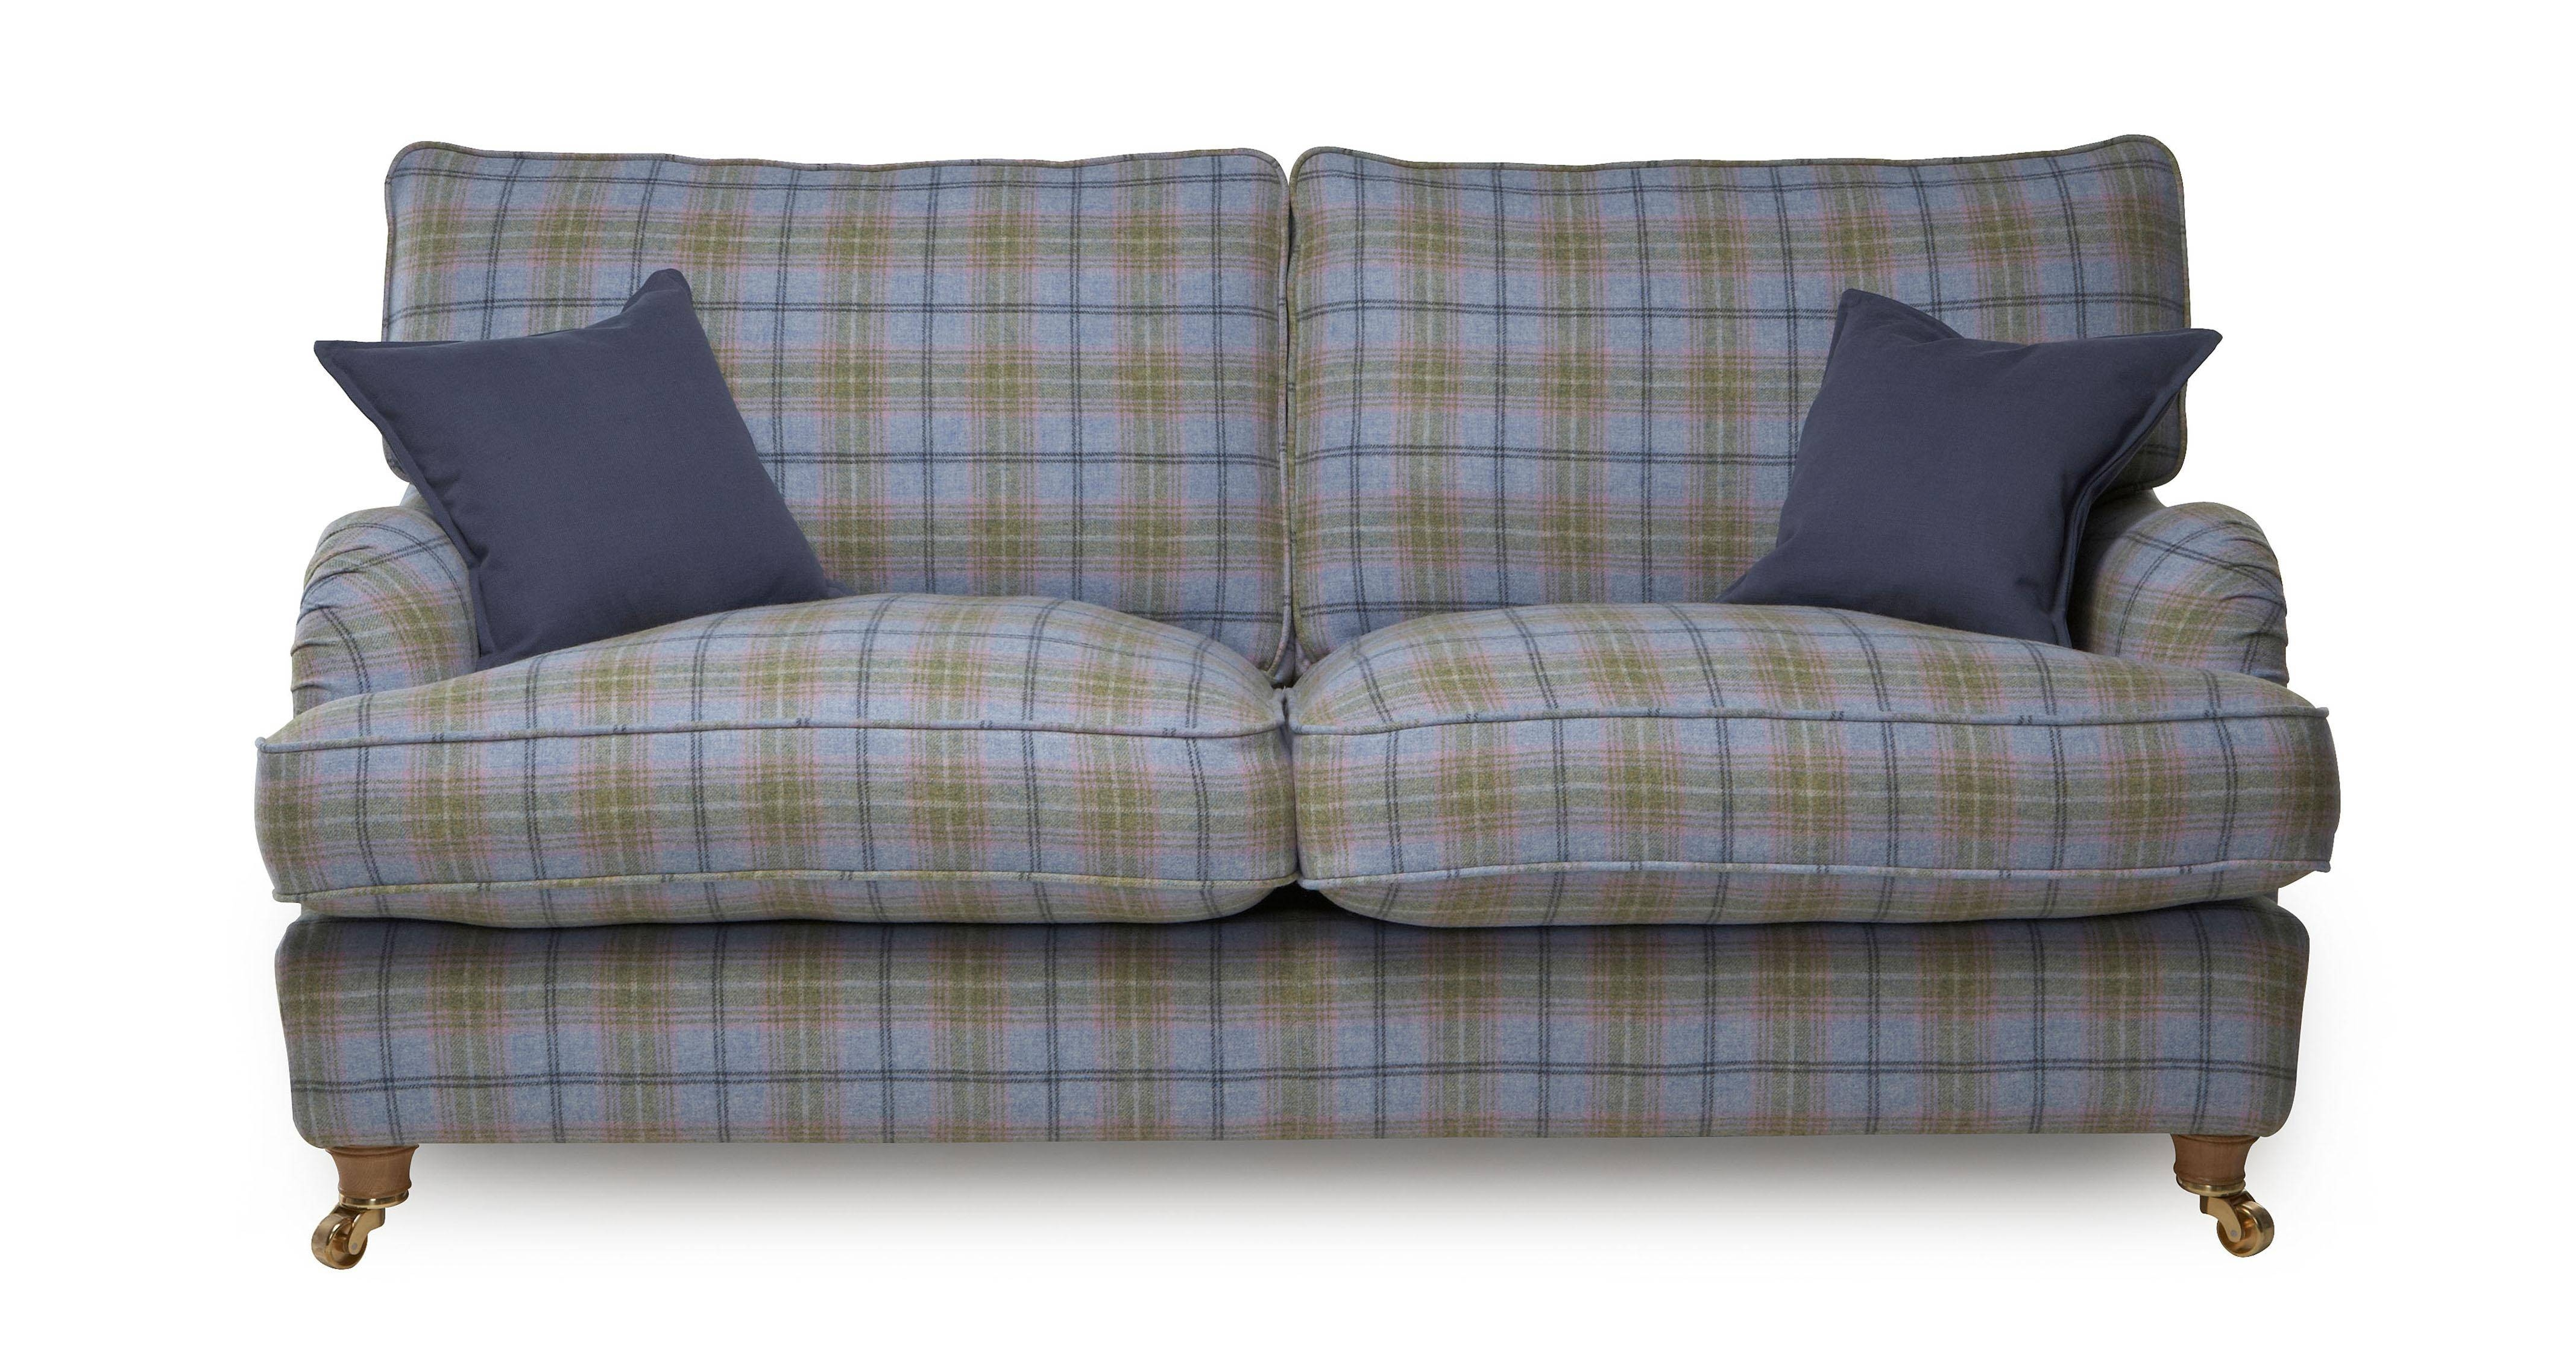 Plaid Sofa with Blue Plaid Sofas (Image 8 of 15)